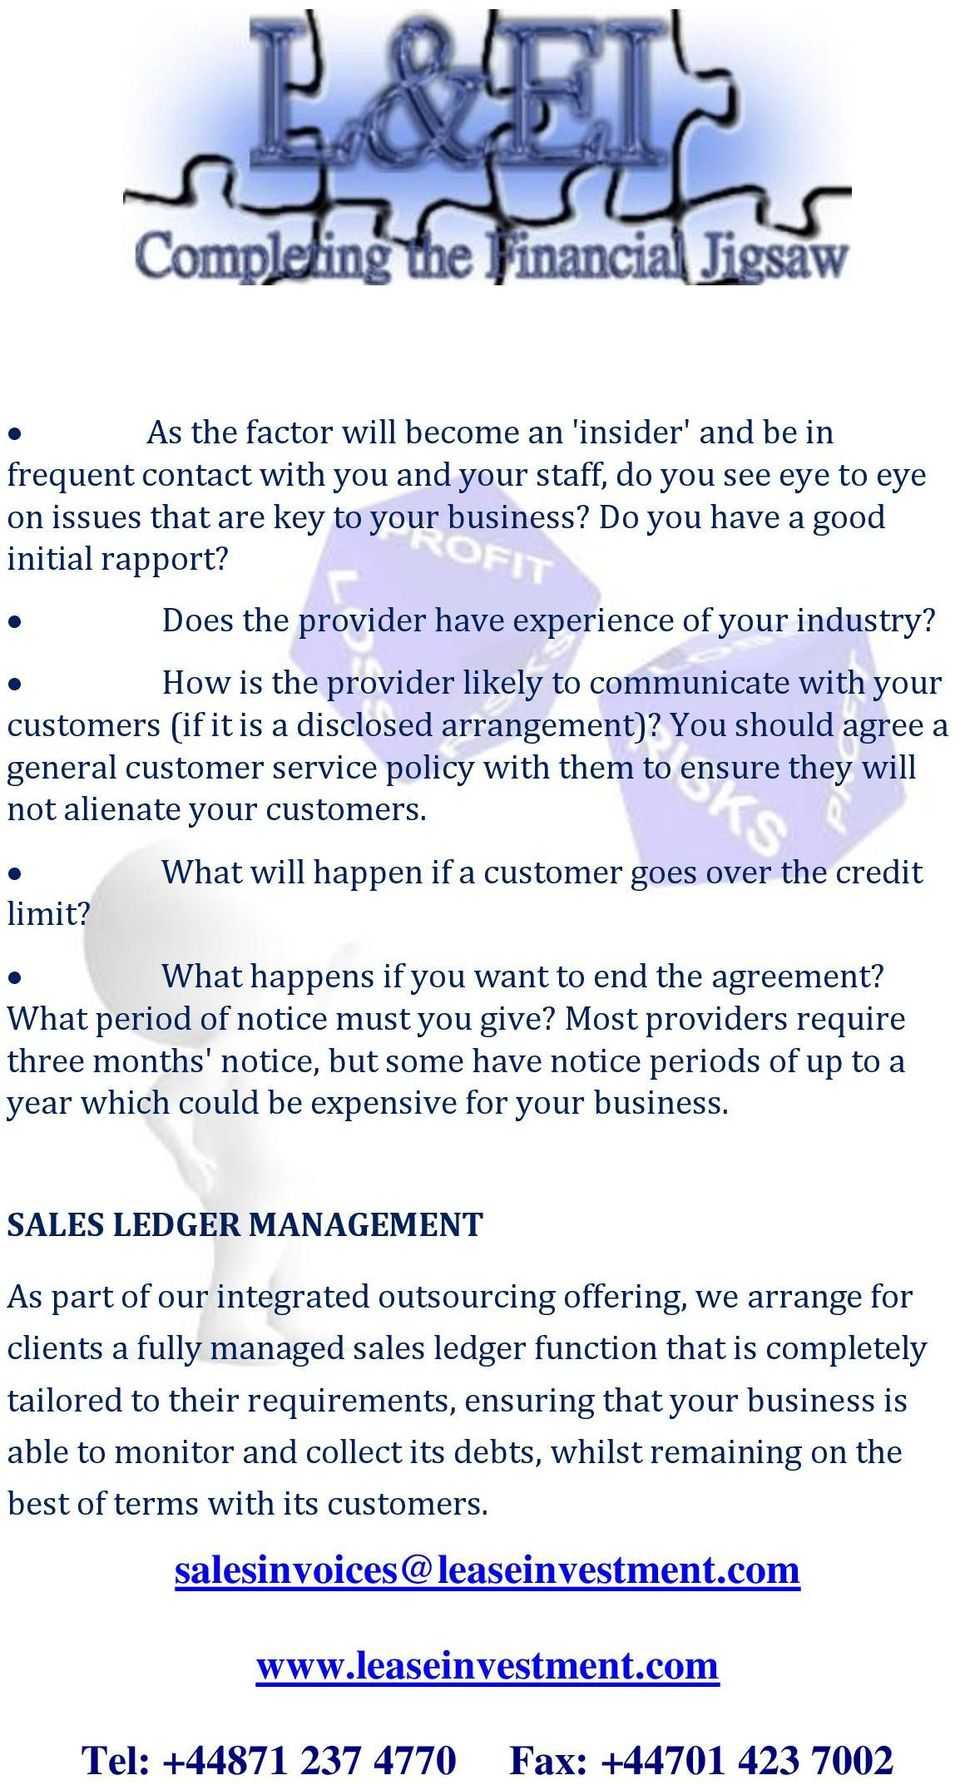 You should agree a general customer service policy with them to ensure they will not alienate your customers. limit?